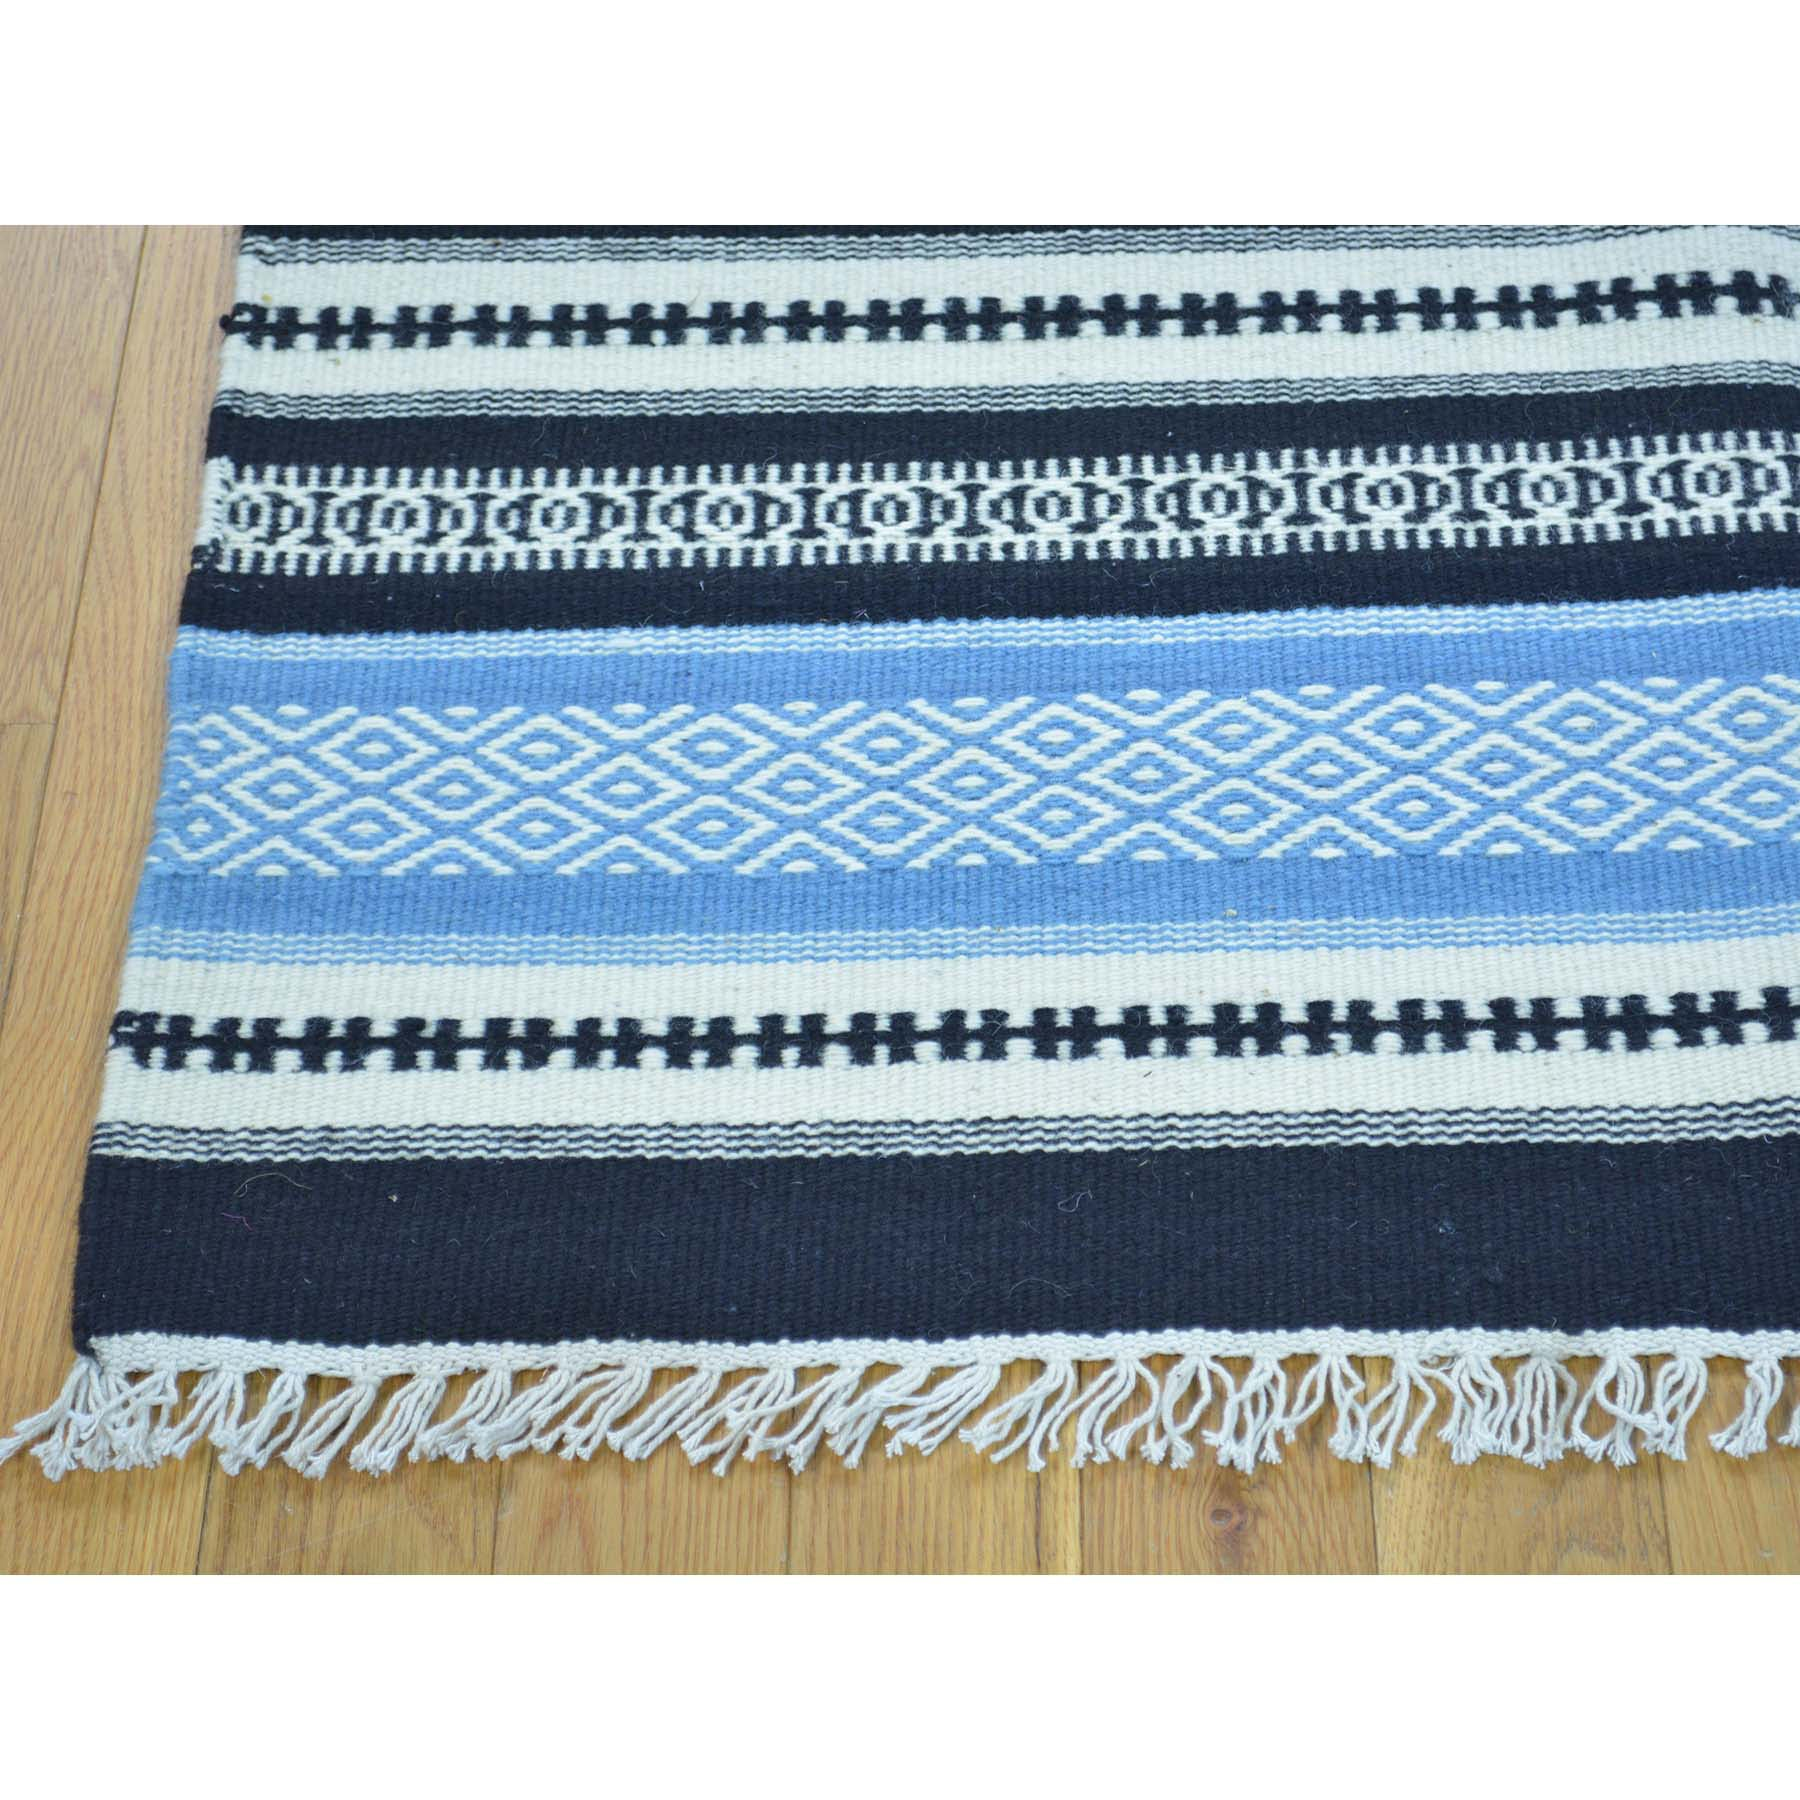 "Handmade Flat Weave Rectangle Rug > Design# SH30026 > Size: 3'-10"" x 6'-1"" [ONLINE ONLY]"